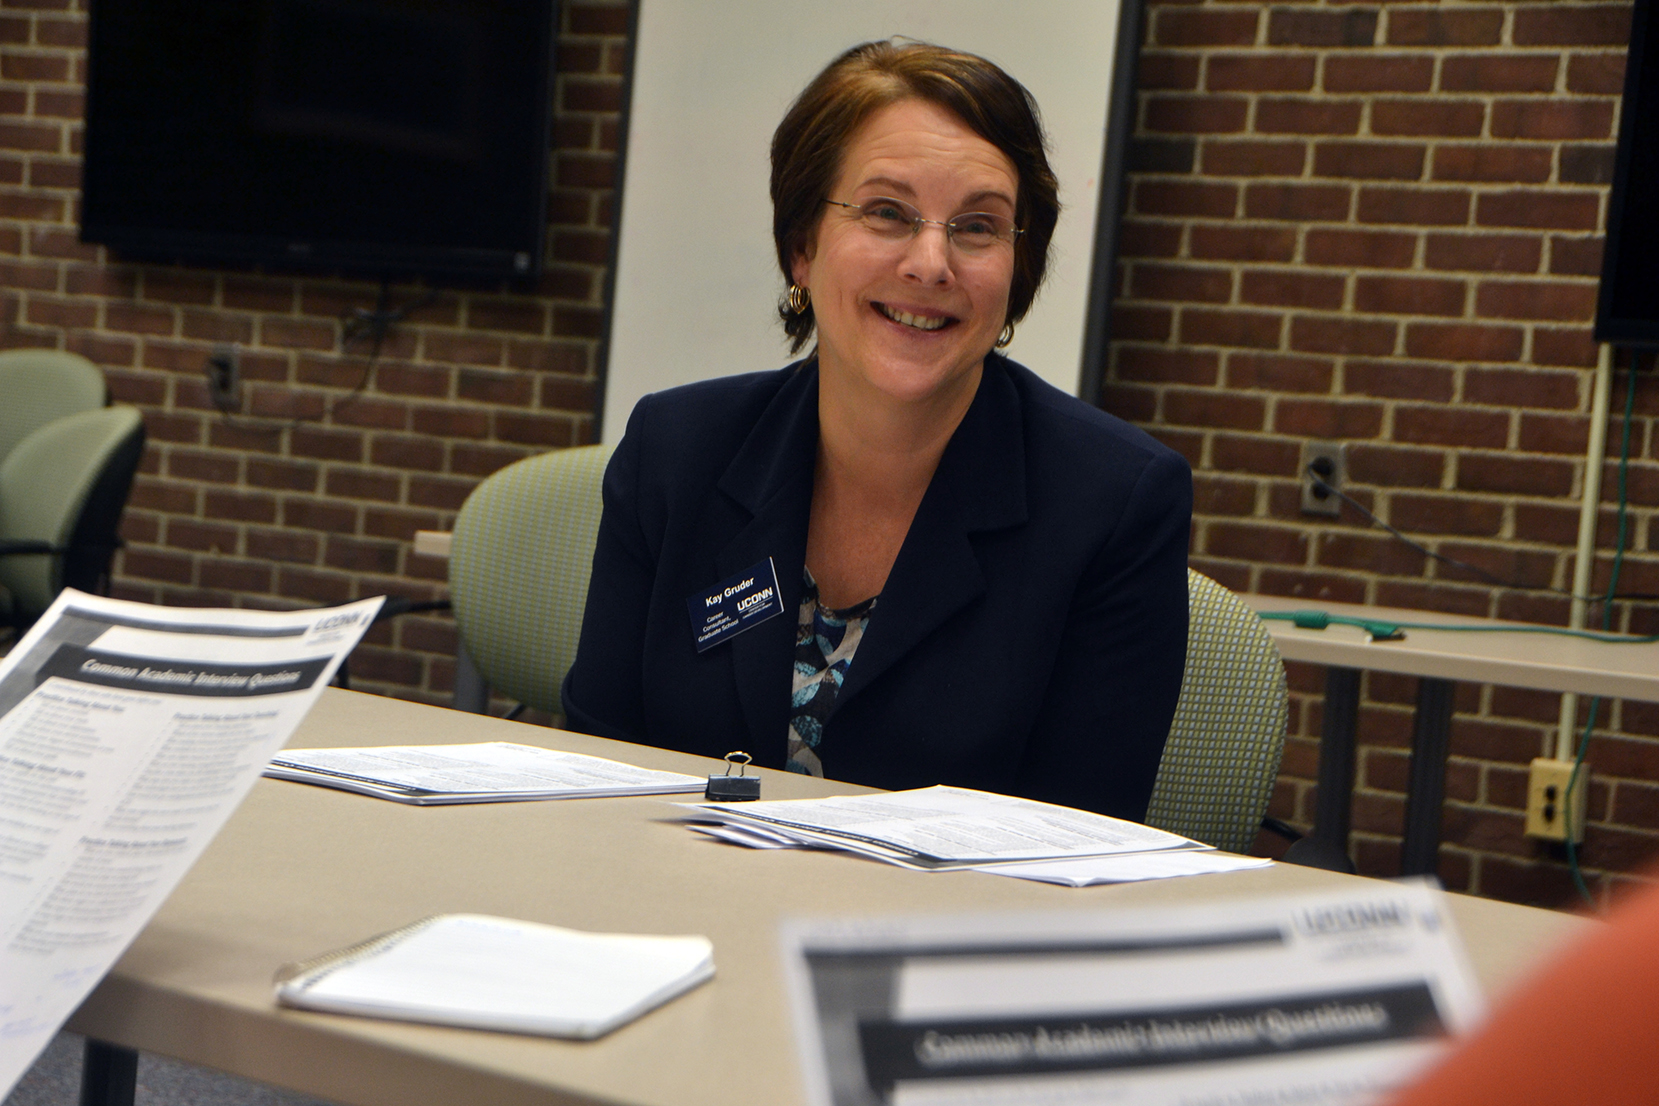 Center for Career Development career consultant Kay Gruder speaks to a group of students during a workshop at Homer D. Babbidge Library in Storrs, Connecticut on Thursday, Oct. 29, 2015. (Bailey Wright/The Daily Campus)